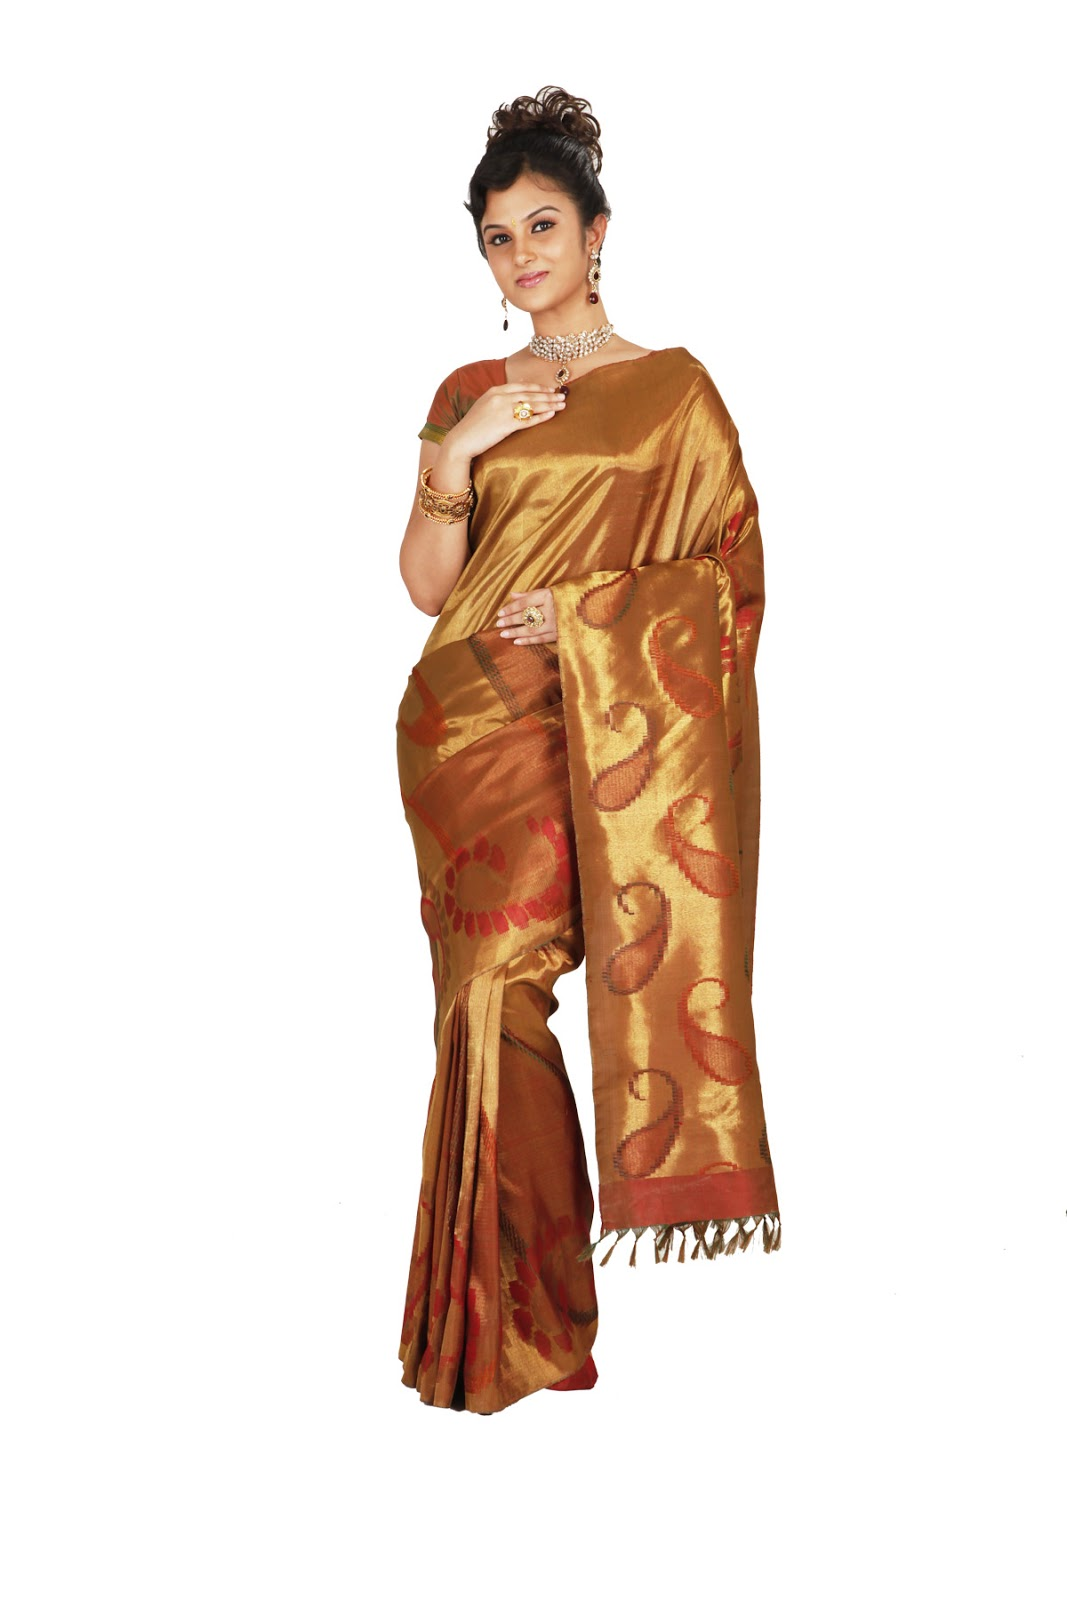 Marriage Sarees,Wedding Sarees,Sarees,Saree,Sarees